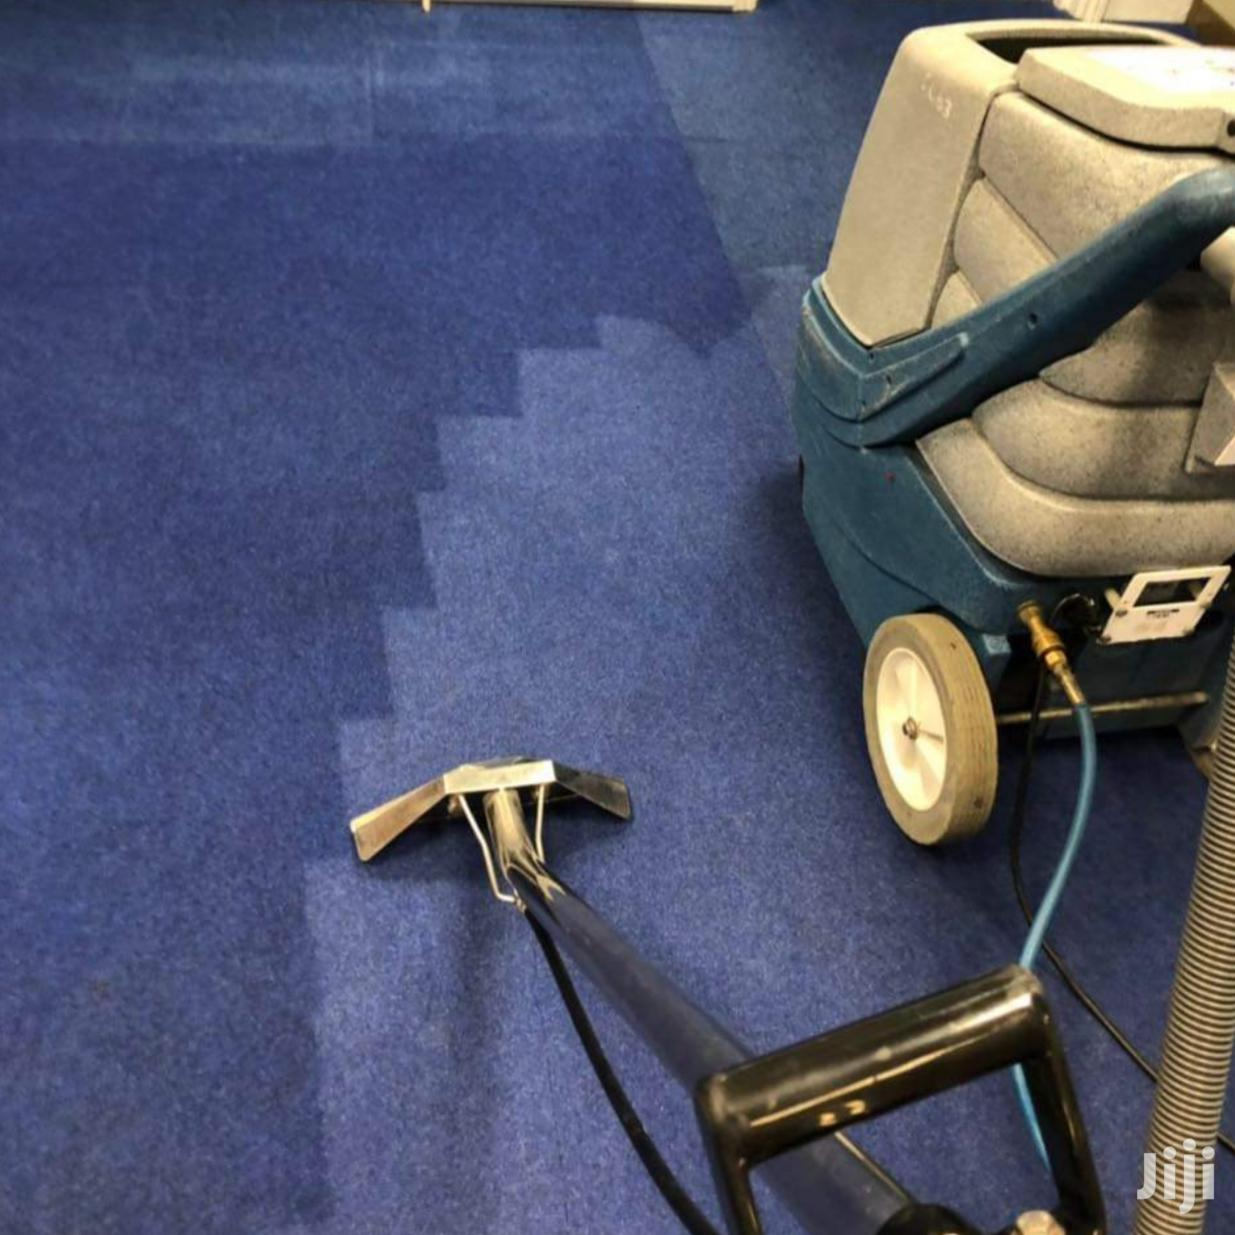 Sofa Cleaning And Carpet Cleaning Services | Cleaning Services for sale in Kampala, Central Region, Uganda